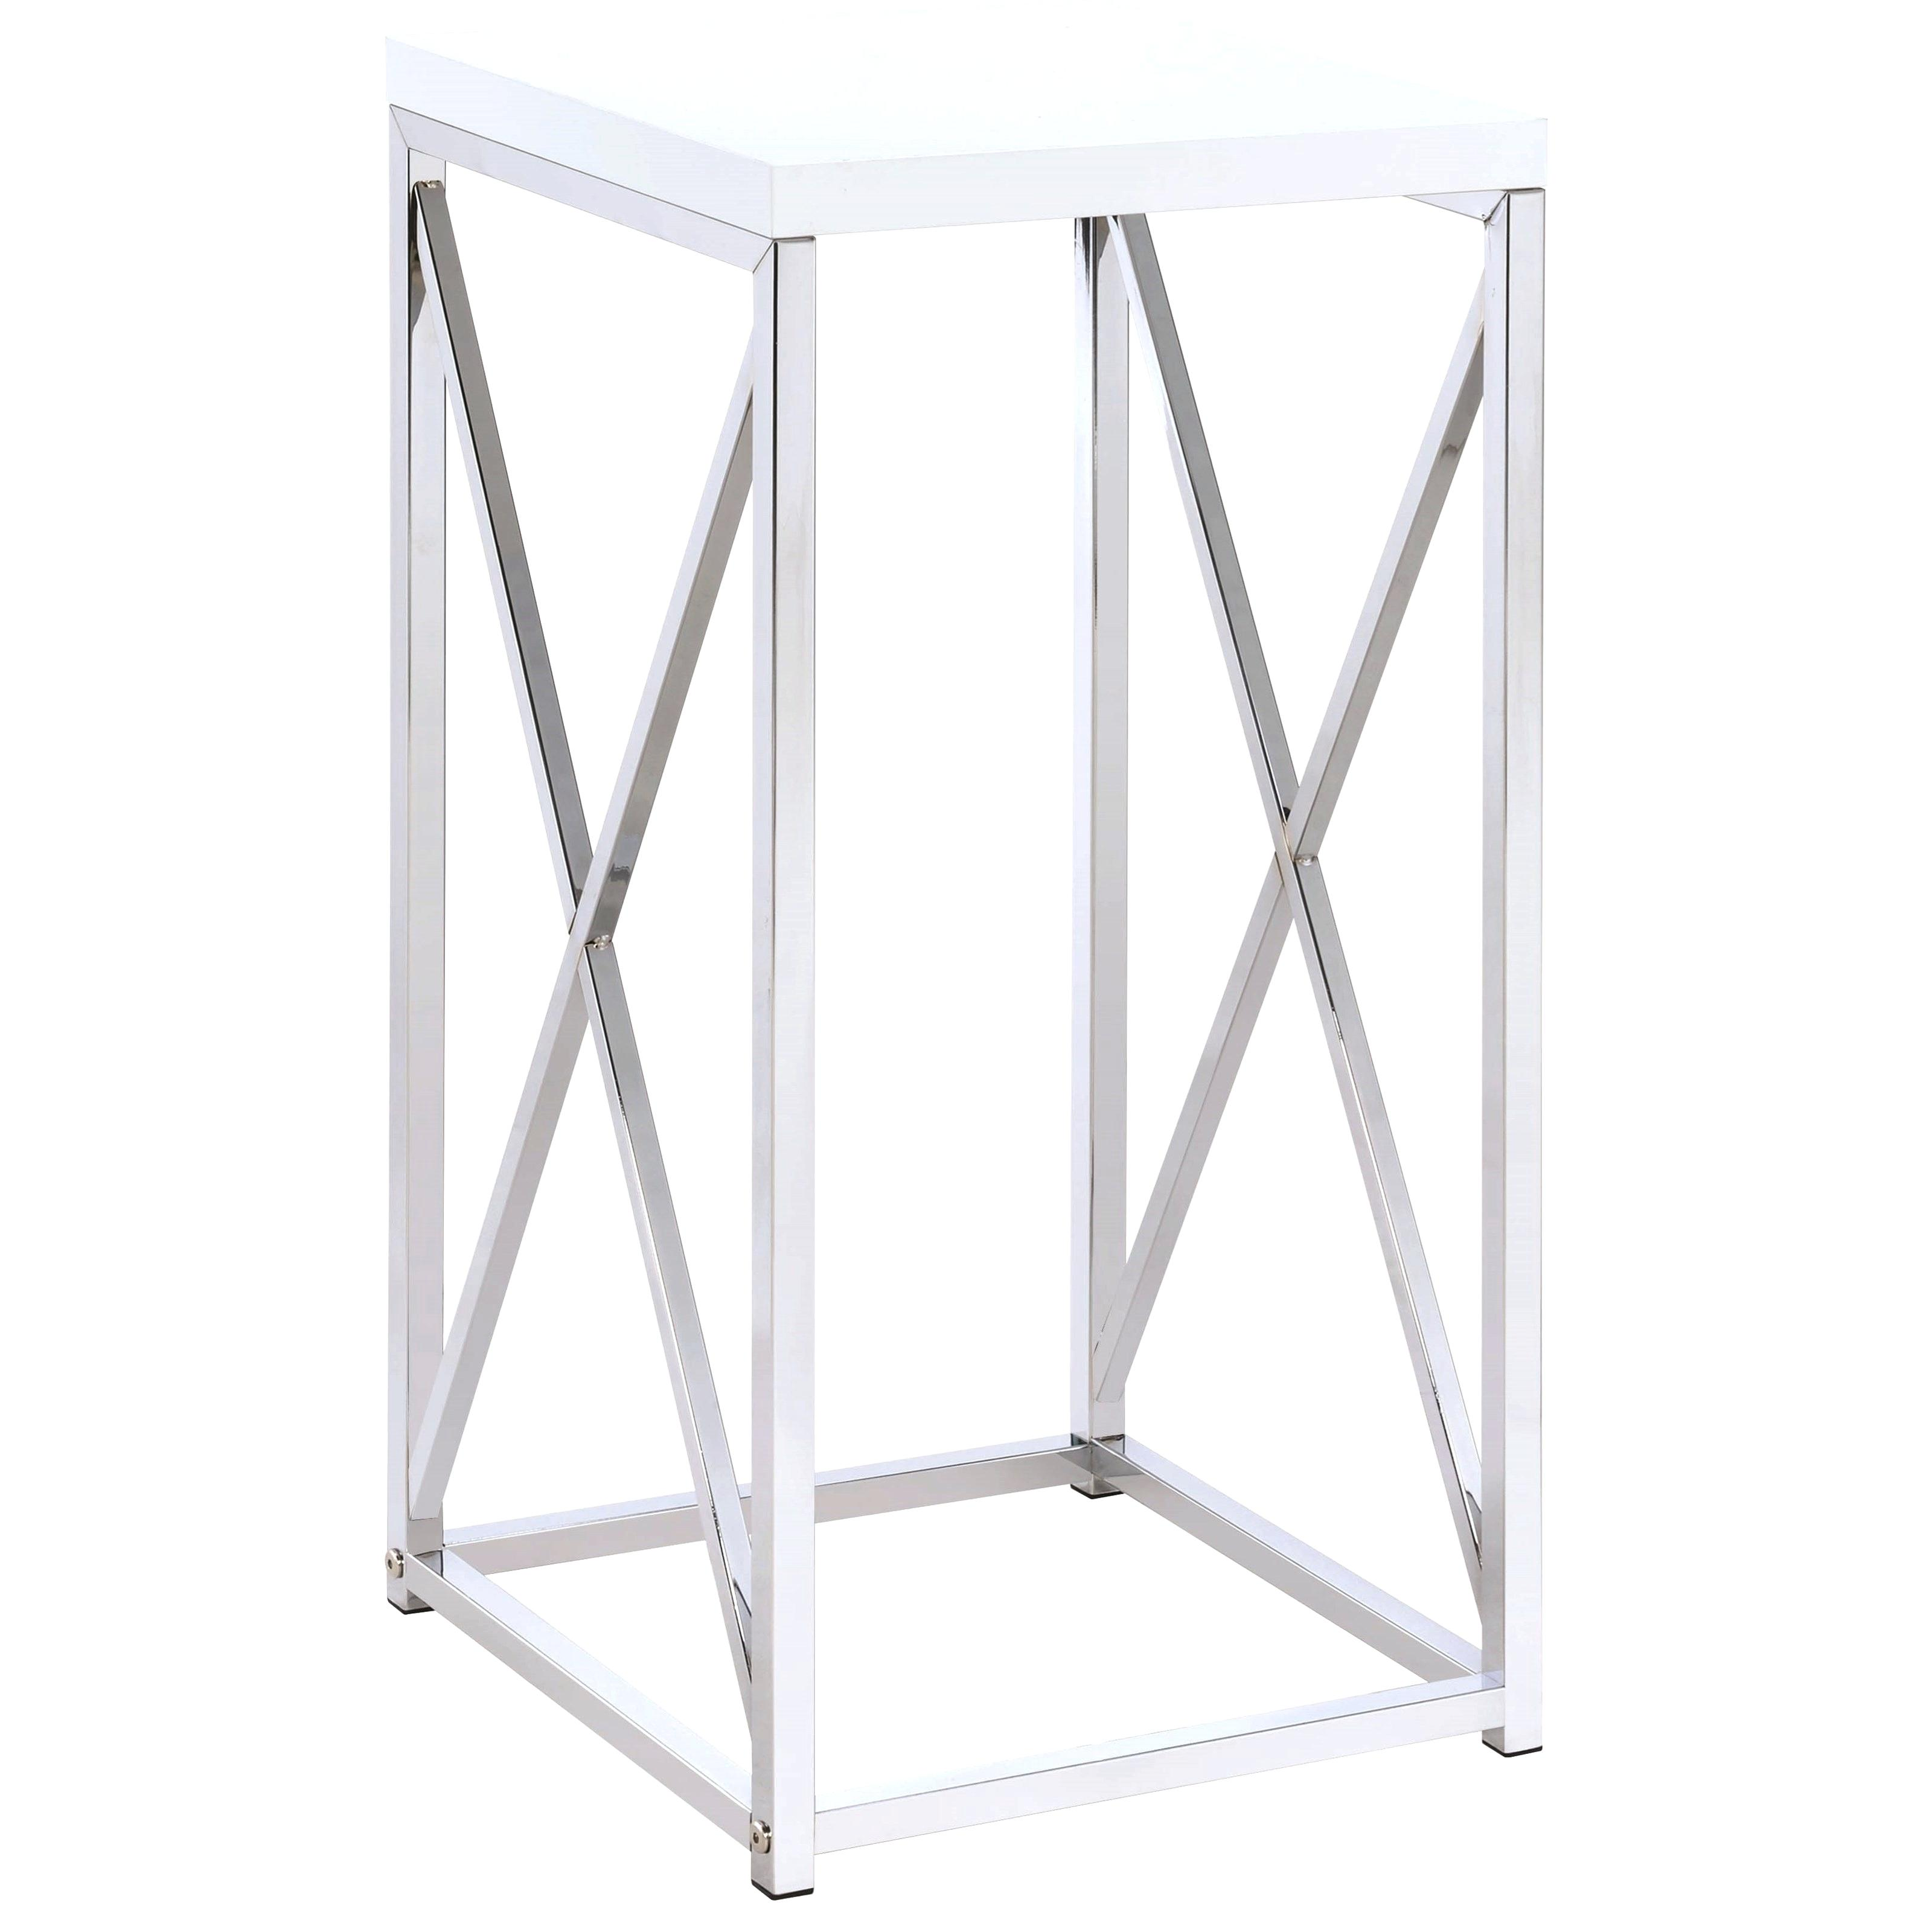 contemporary accent table tables modern round coaster with base glass paper tablecloths wooden threshold strips for carpet small coffee ideas gray side narrow end slim white